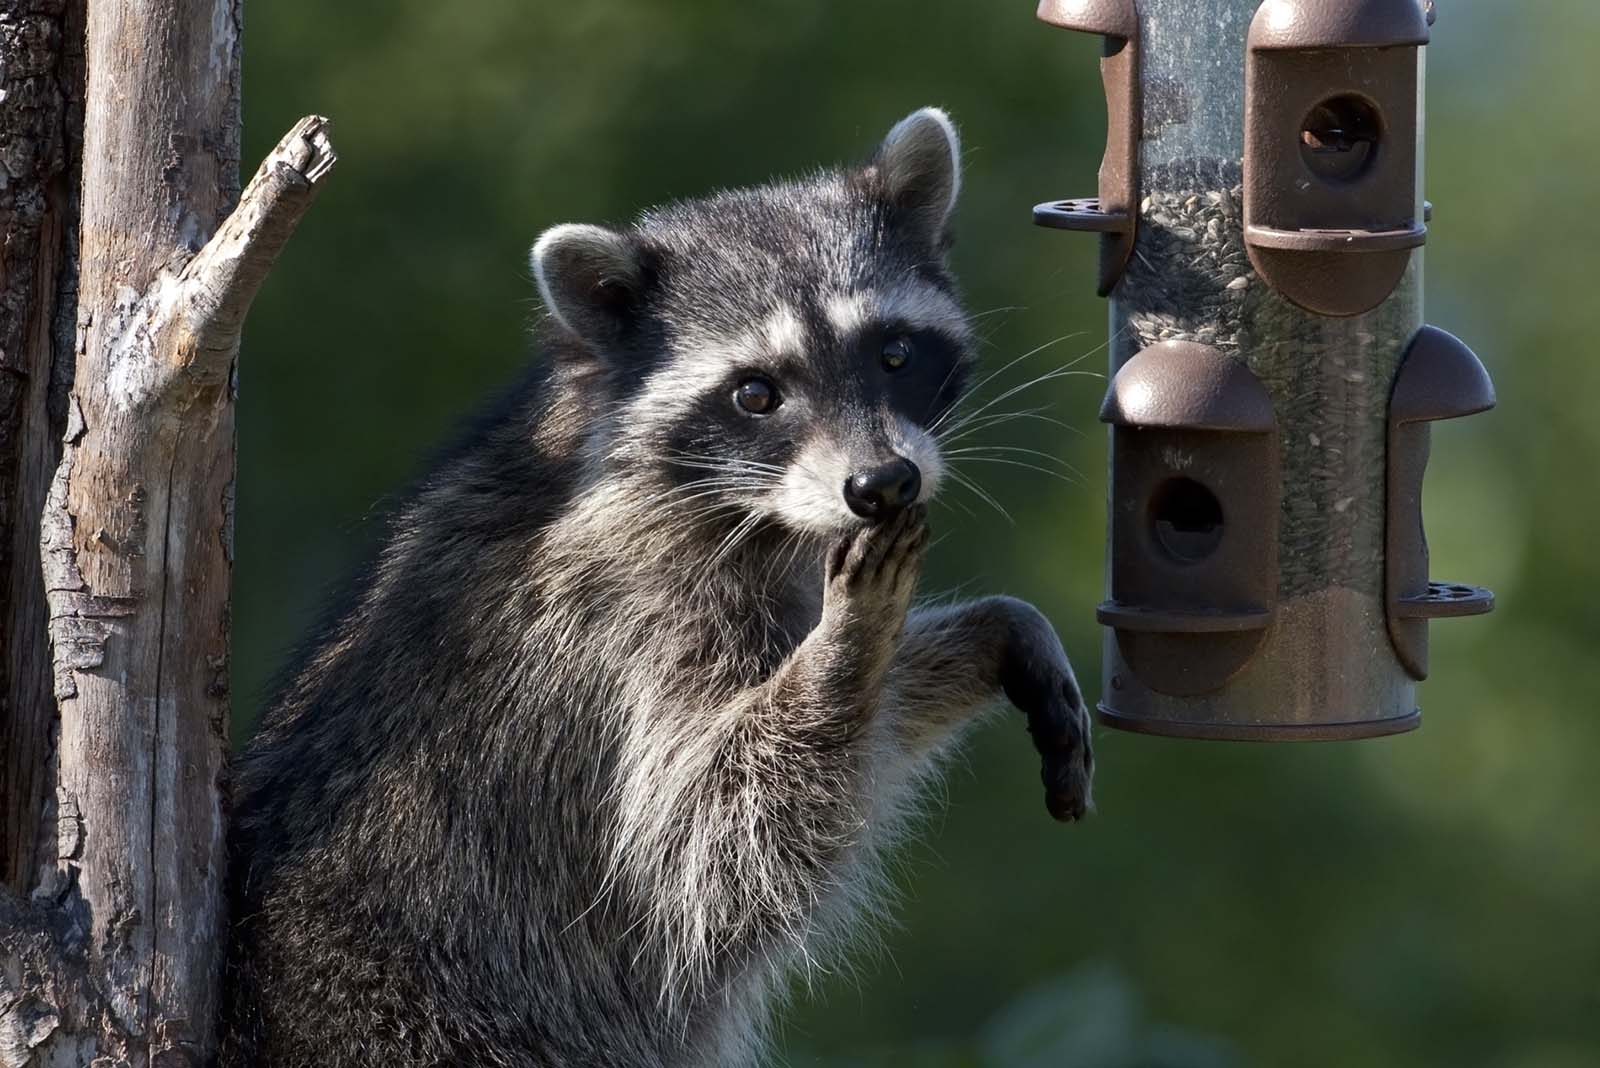 raccoon in wild cute eating sitting against tree credit Martin Smart - How To Get Rid Of Raccoons Pooping On Your Deck